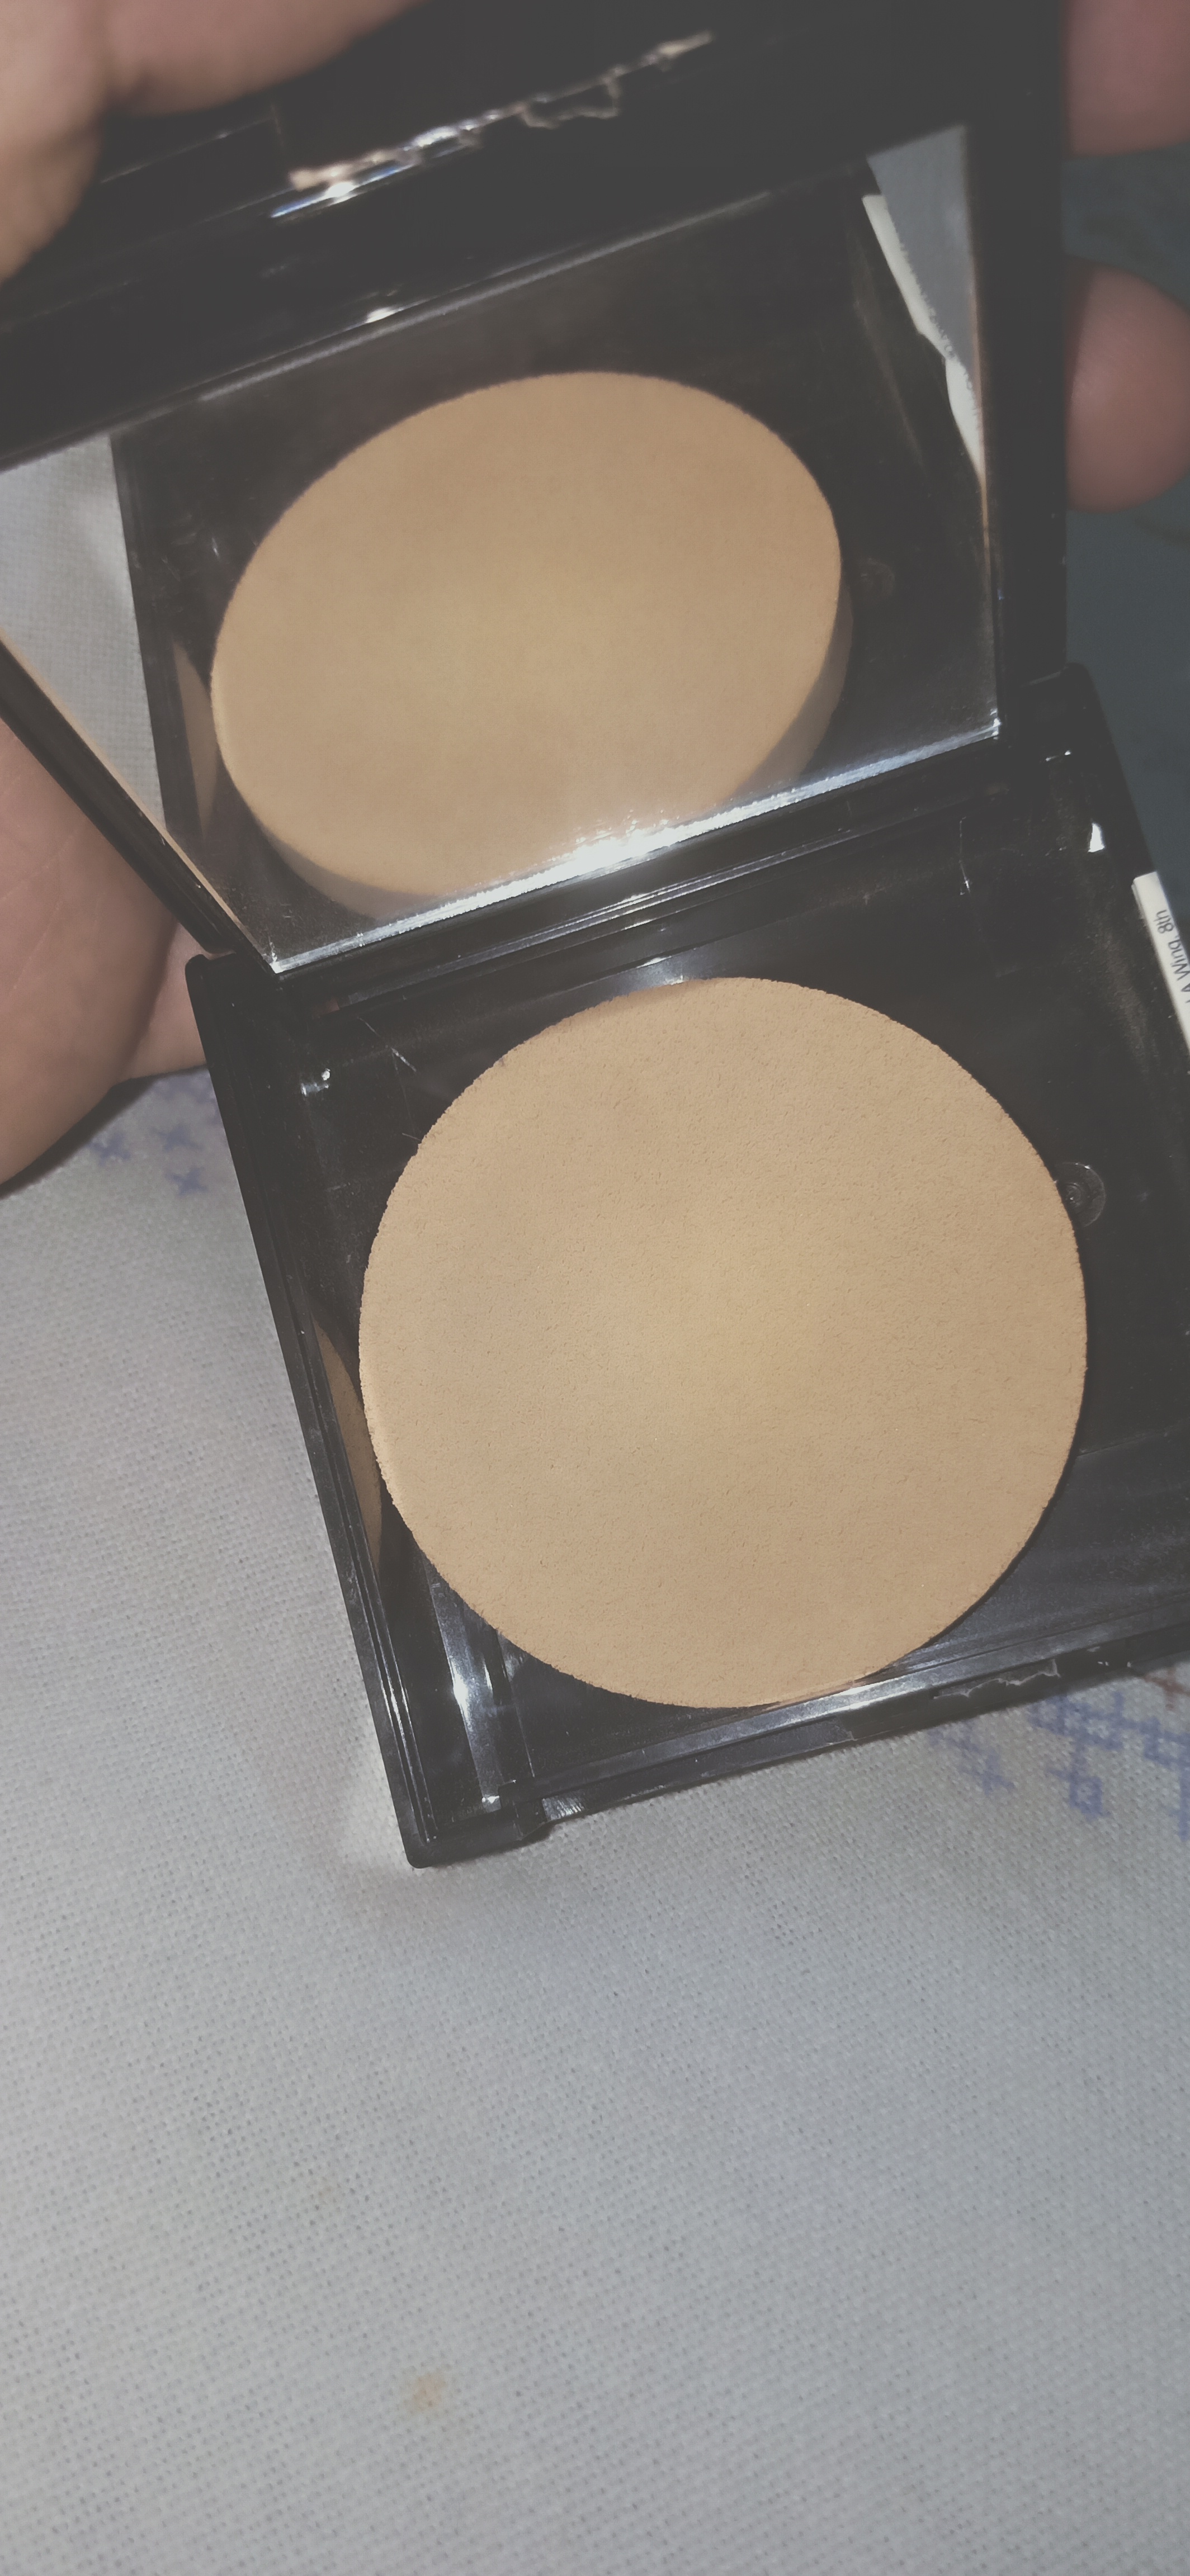 Maybelline Fit Me Matte And Poreless Powder pic 2-Good for oily skin-By nadia_ehtesham